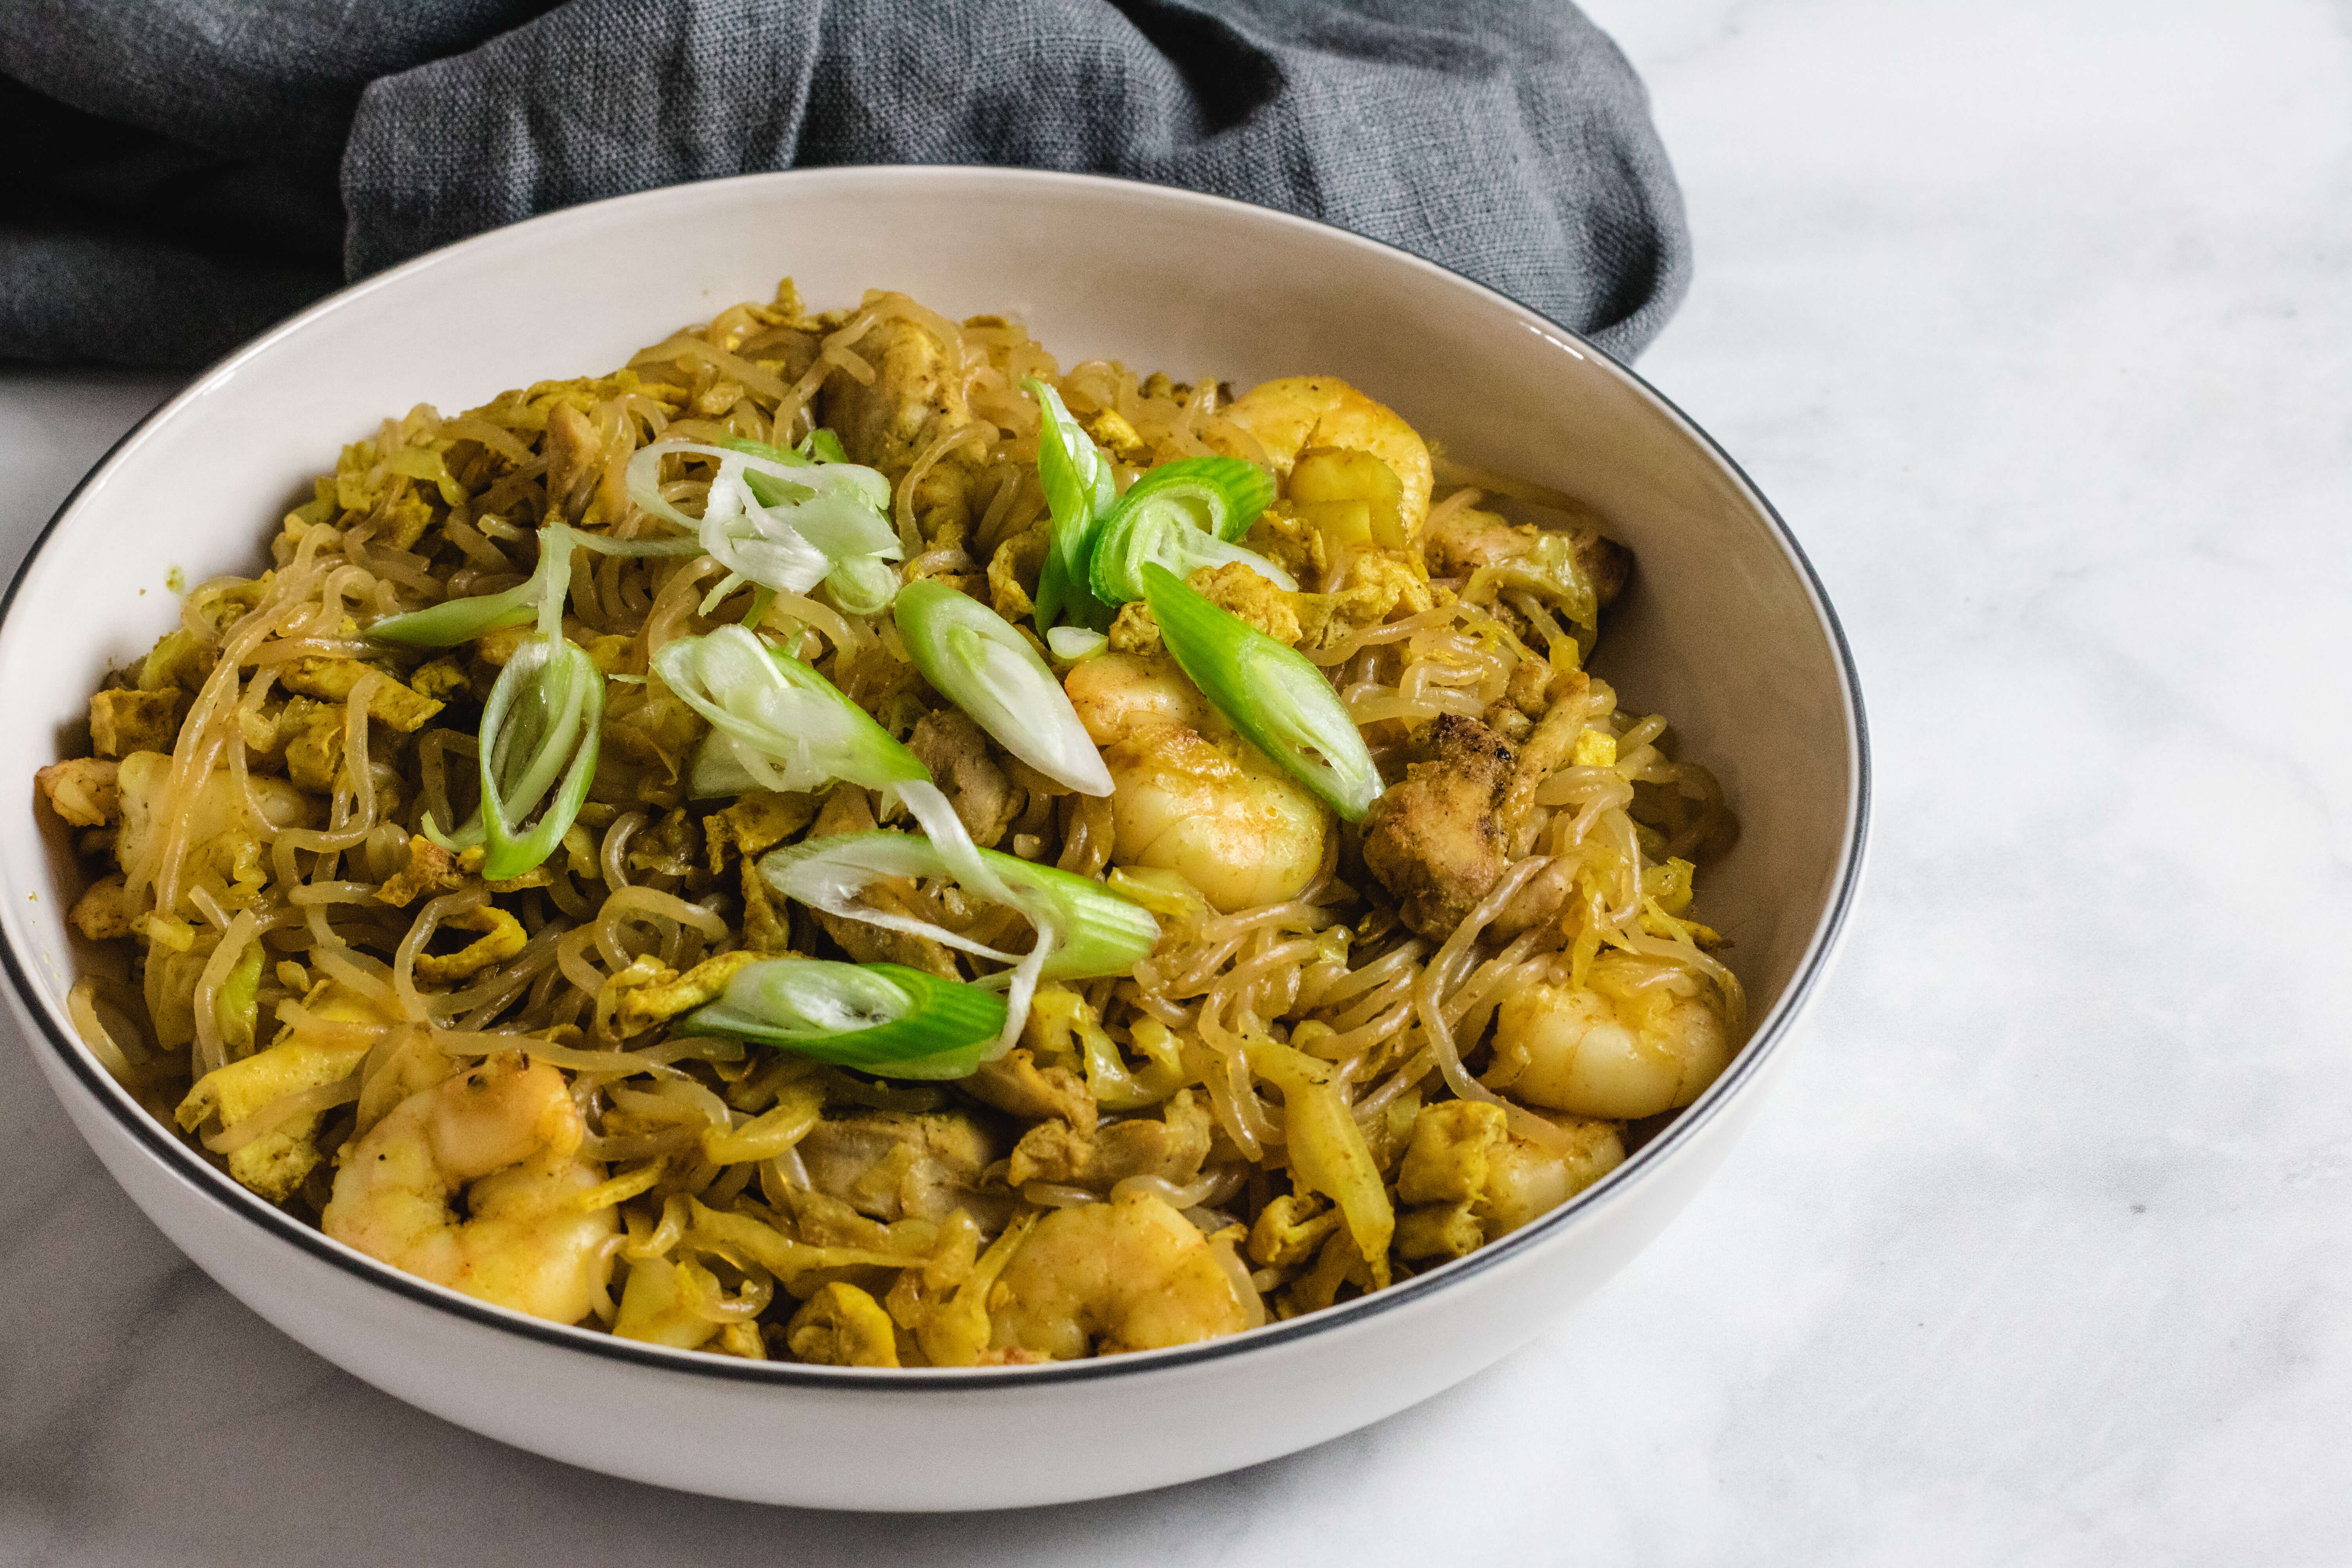 Keto Singapore Noodles Perfect Keto Meal Have Butter Will Travel